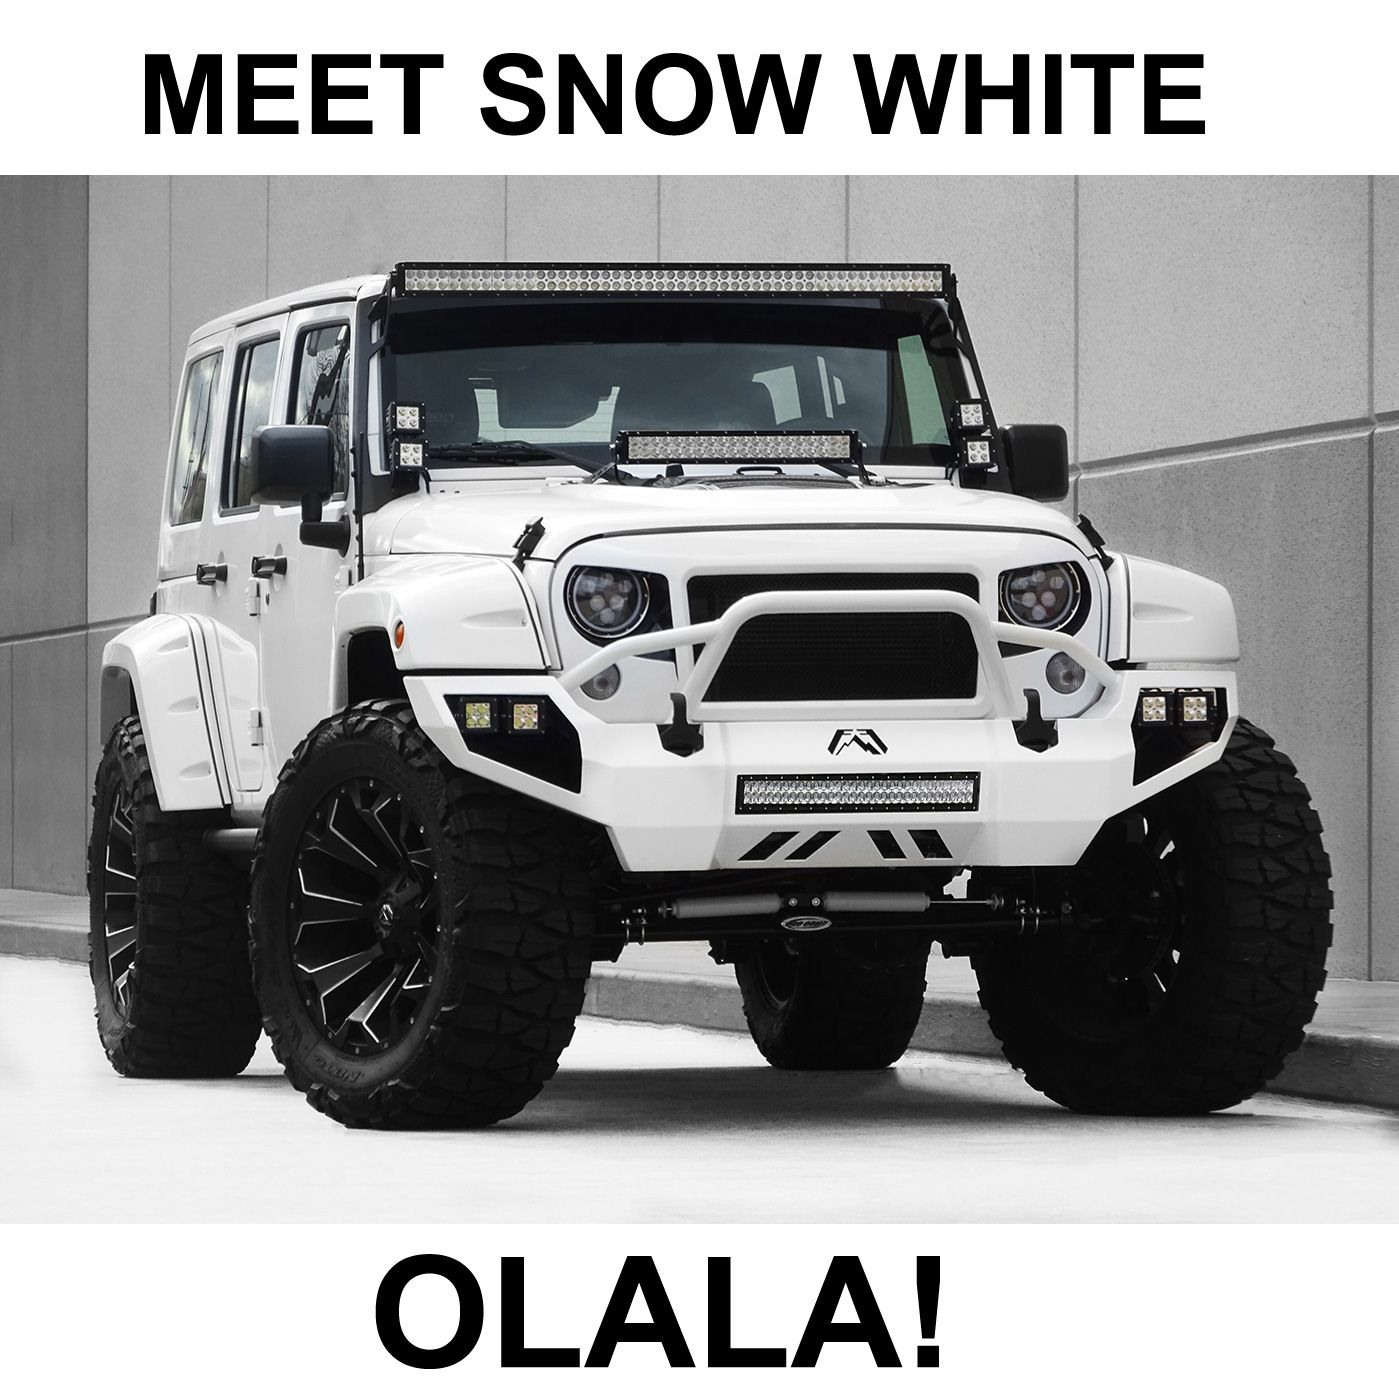 Meet Snow White! jeep jeepwrangler (With images) Jeep